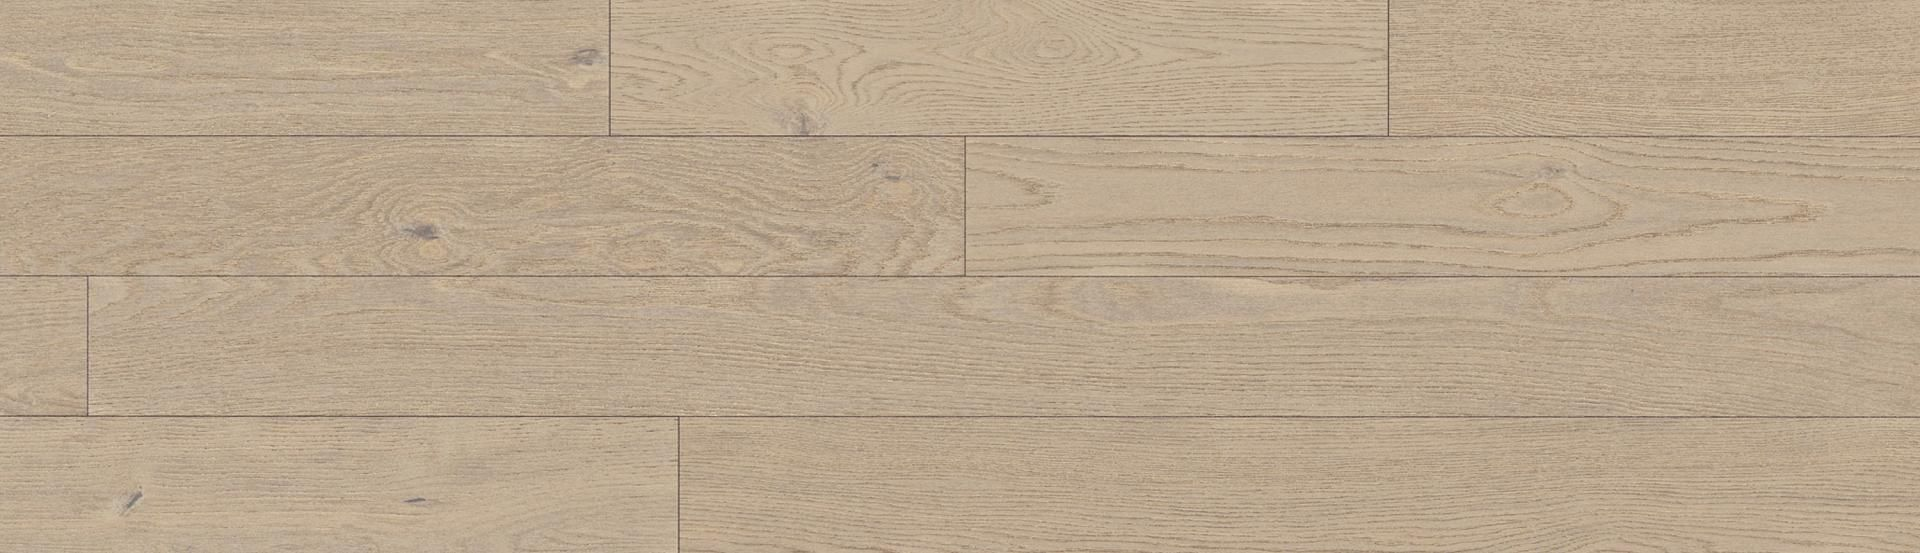 Discover Lauzon\'s Greenwich White Oak from the Urban Loft Series of ...